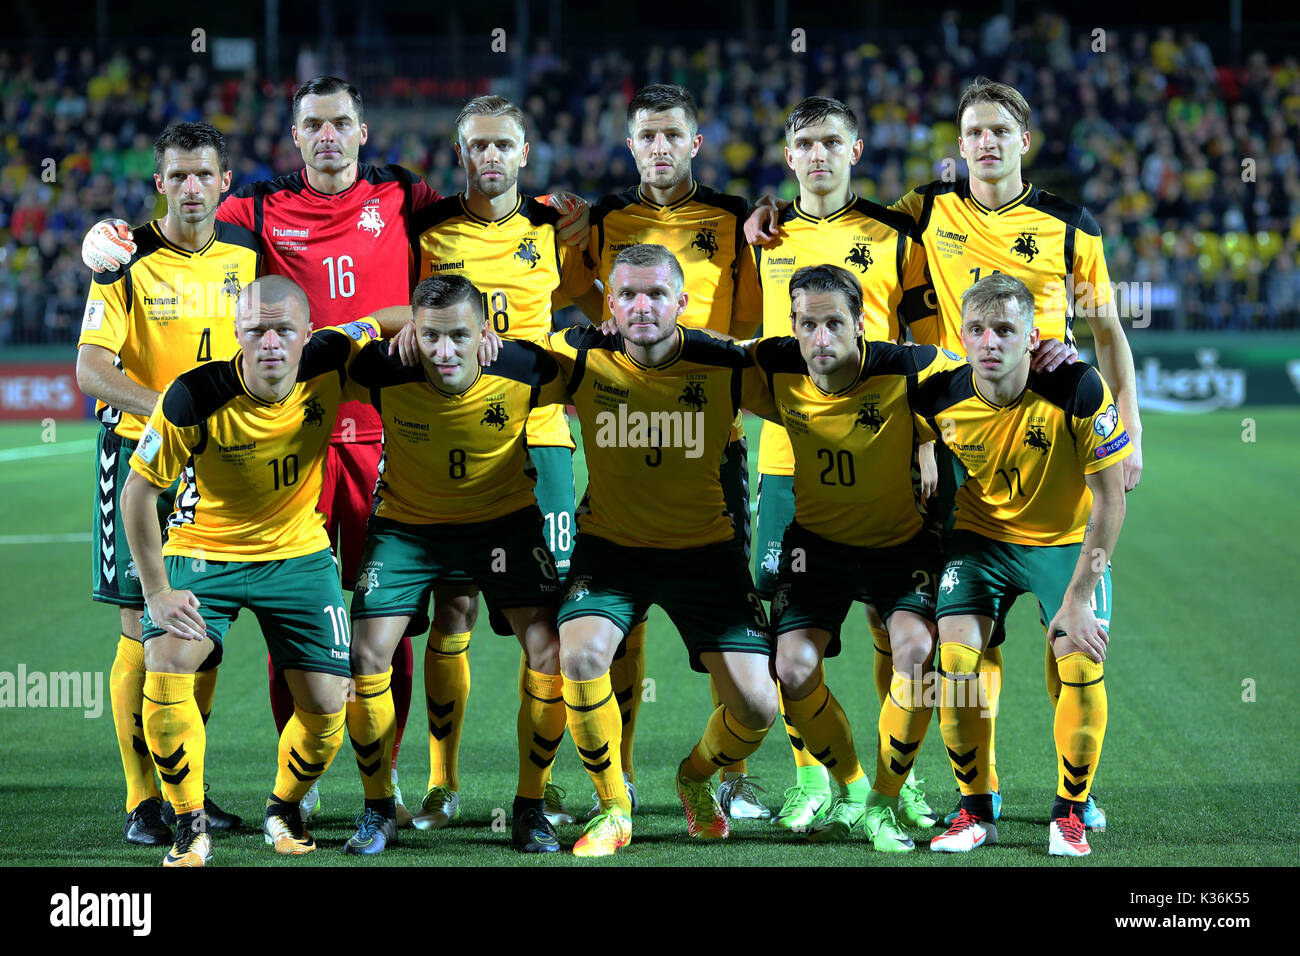 Vilnius, Lithuania. 1st Sep, 2017. Players of Lithuania pose for a group photo before the FIFA World Cup European - Stock Image